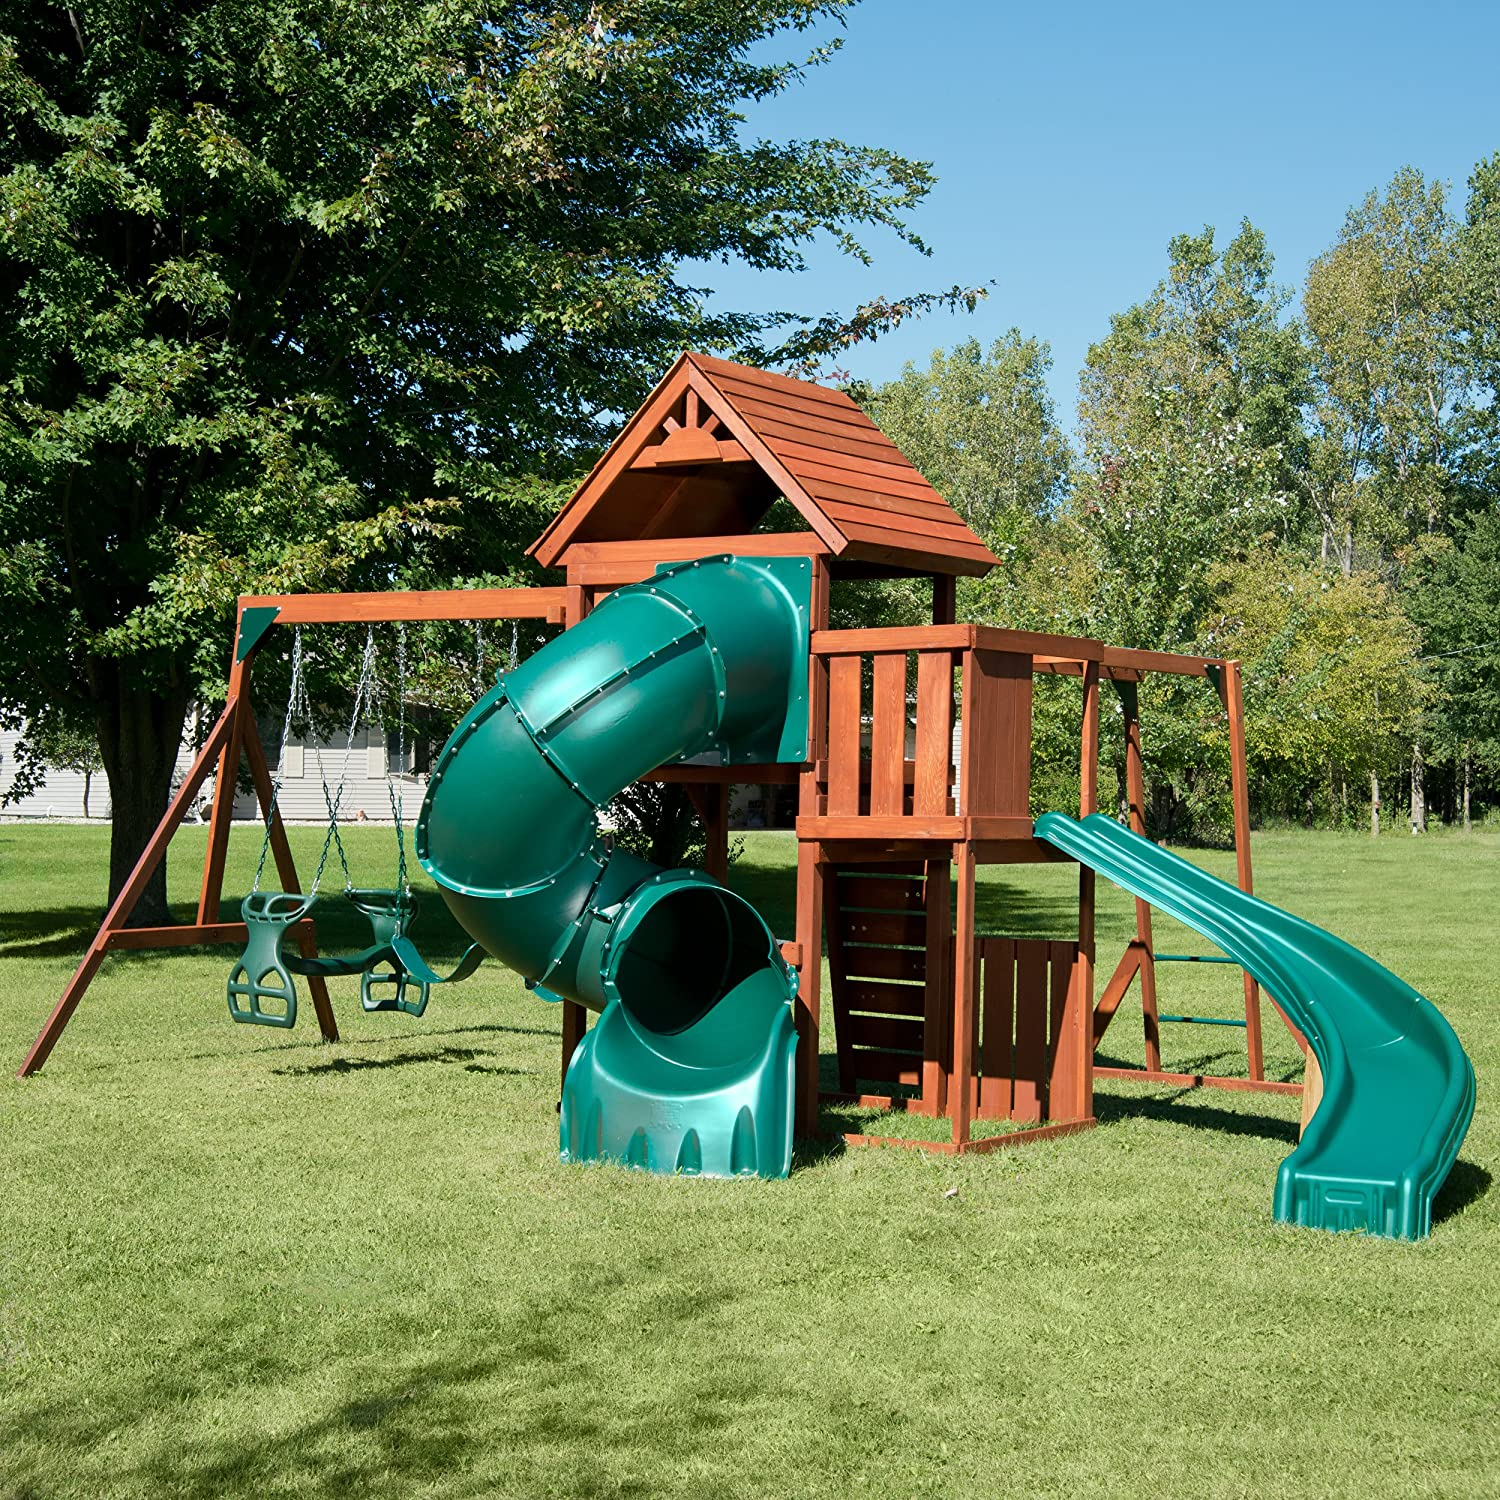 custom slide ne n alpine zoom playset products set kit play hardware diy swing